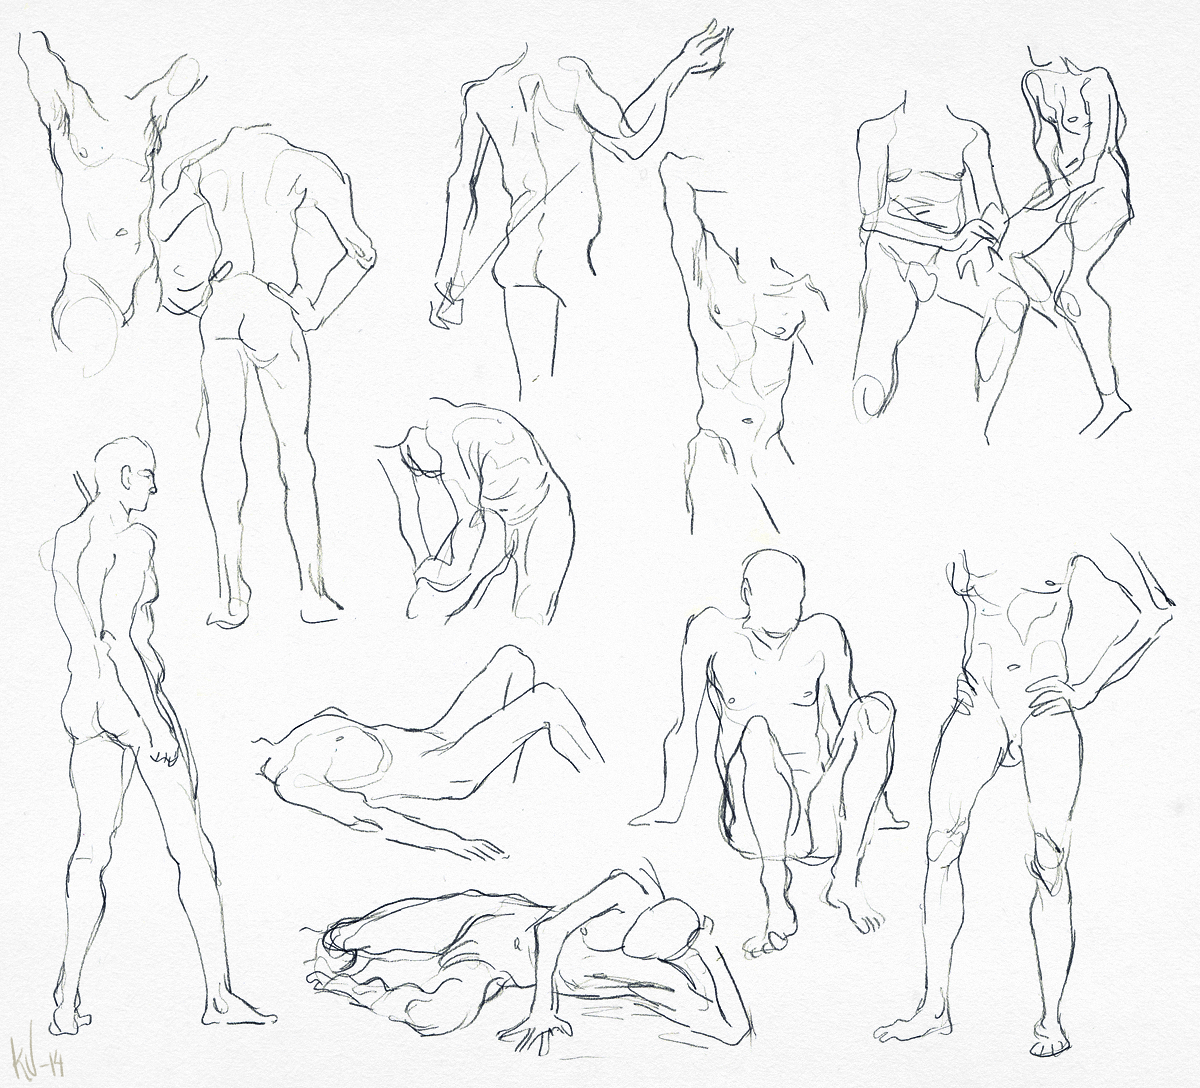 #croquis #male #drawing #sketch #figure #study